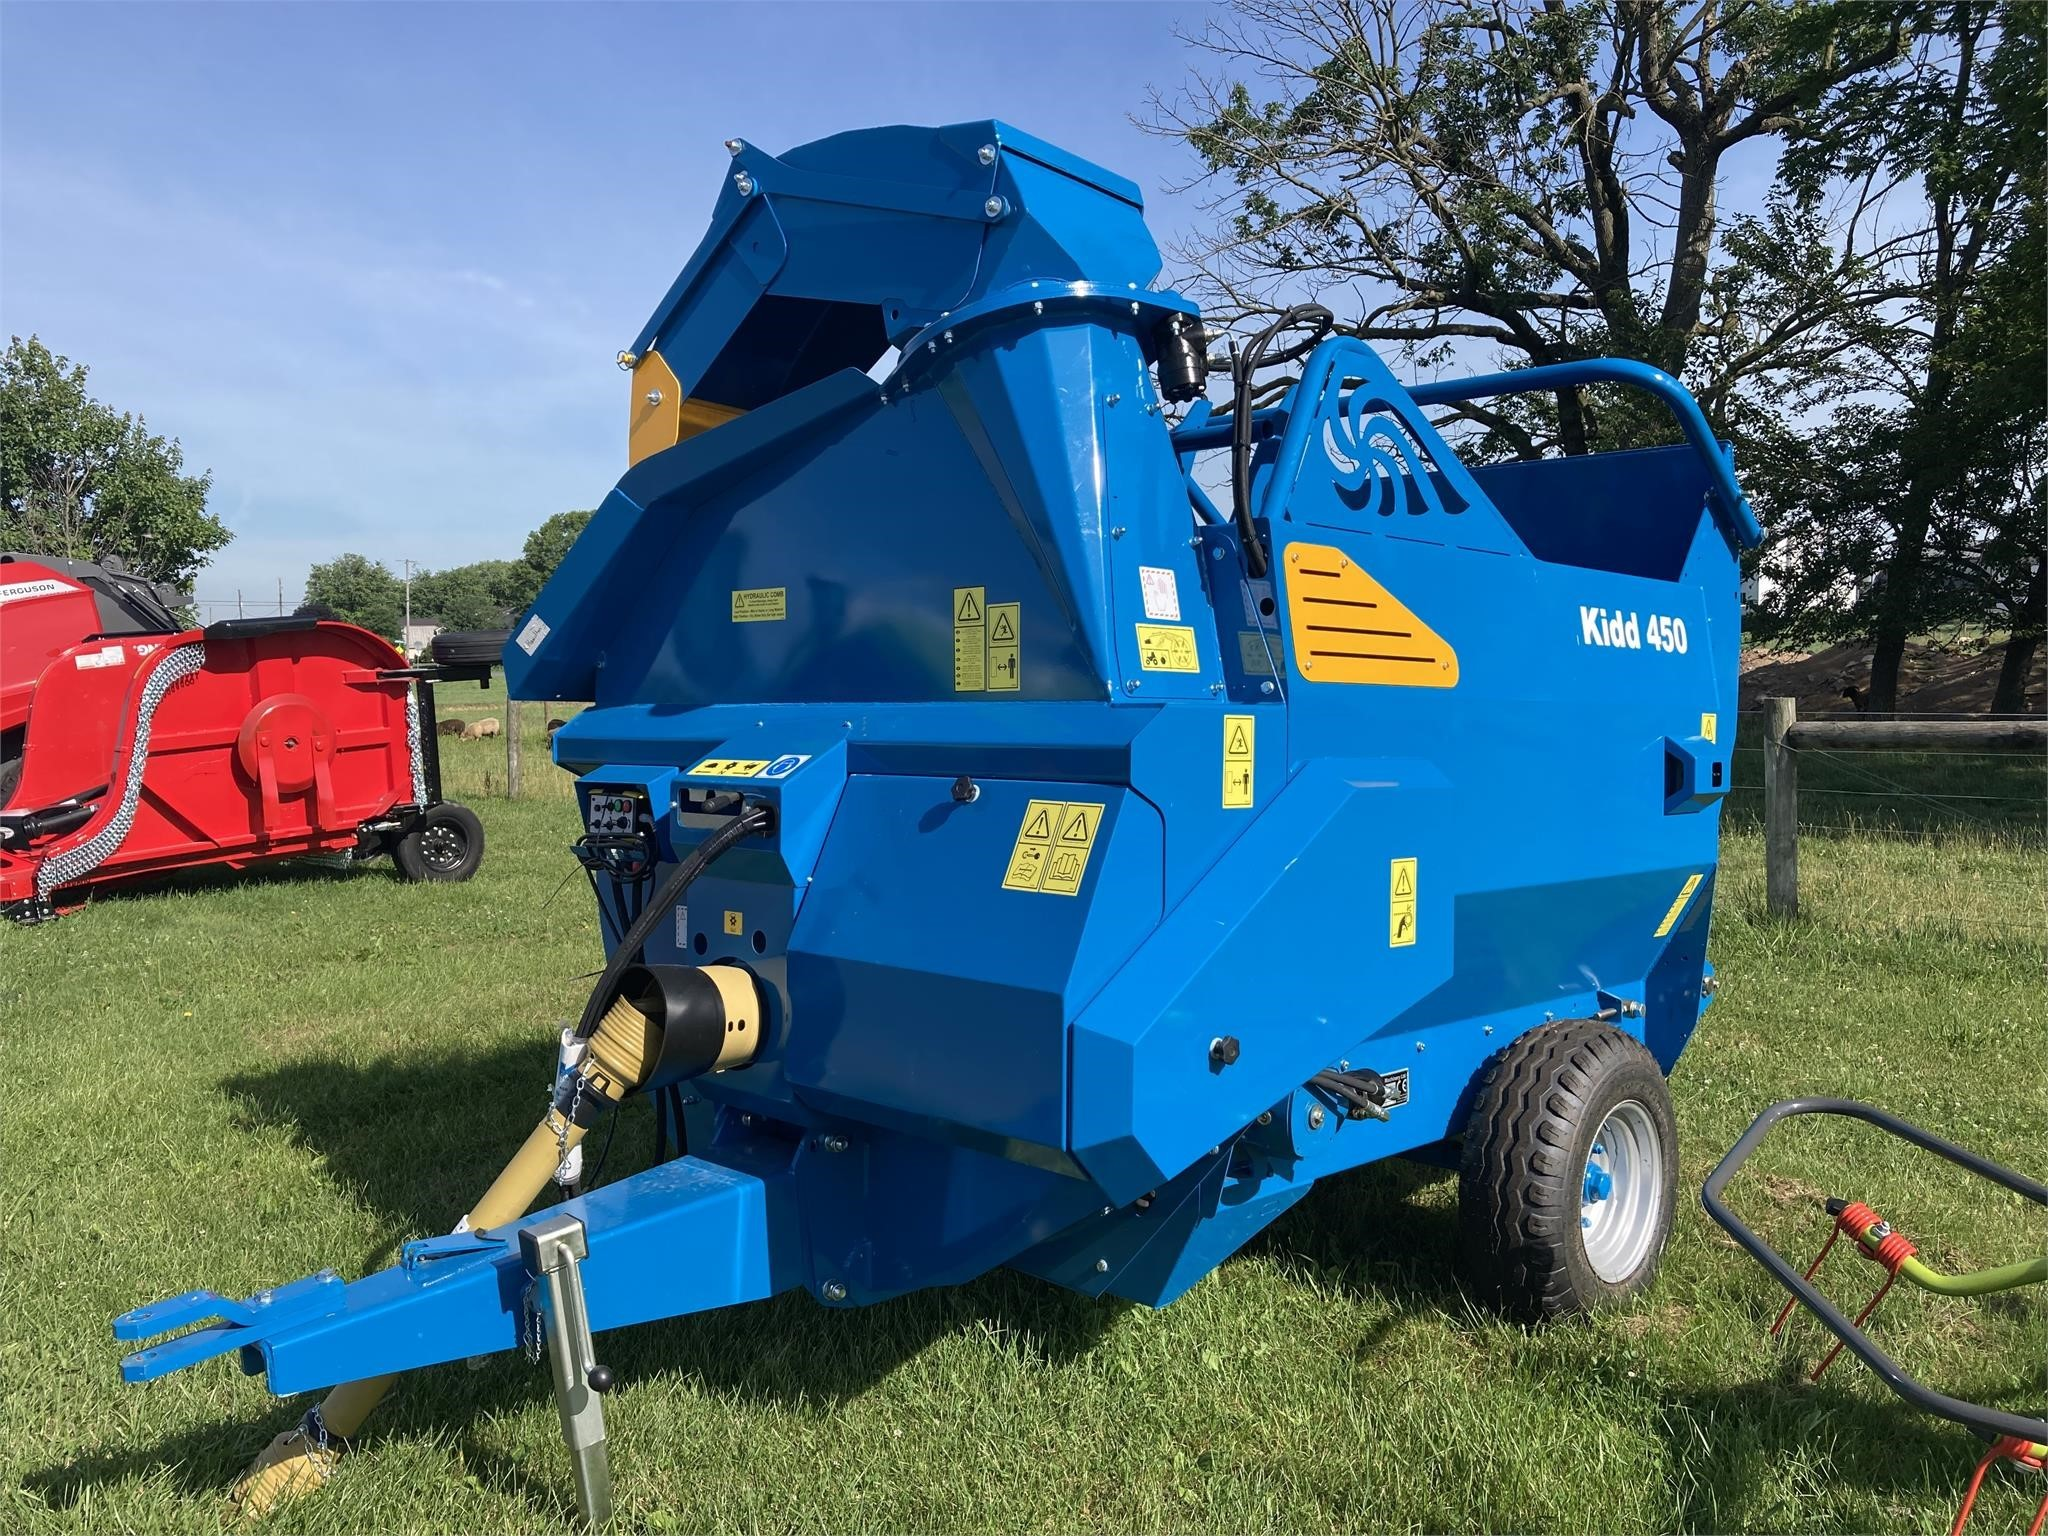 2021 Kidd 450 Grinders and Mixer